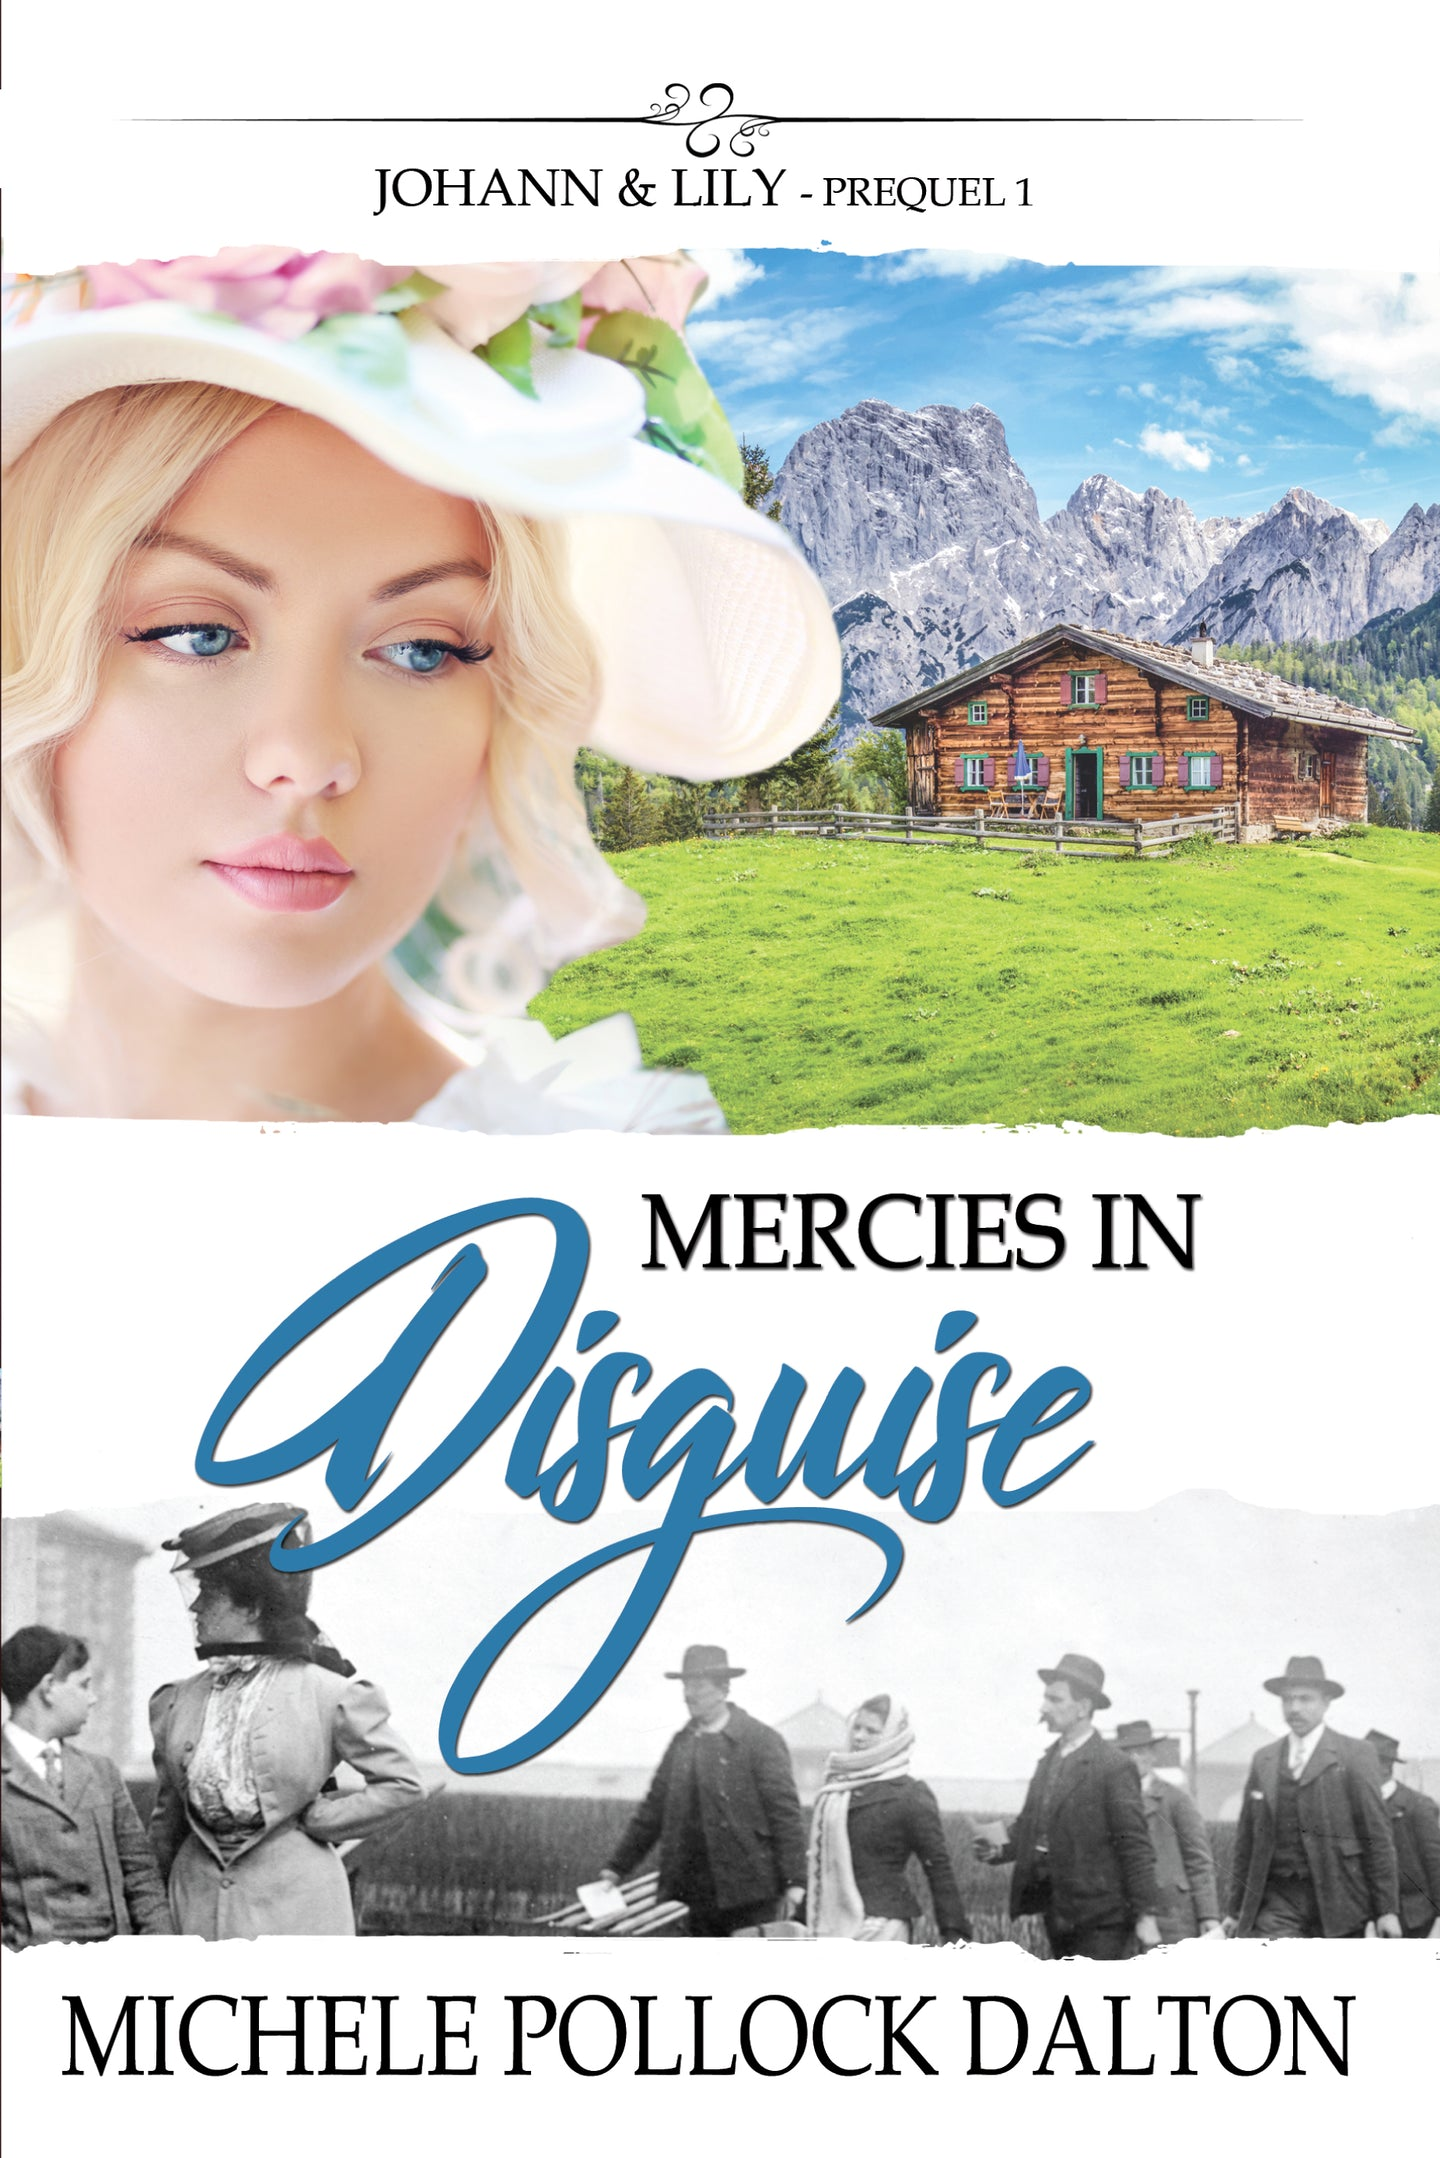 Mercies in Disguise (Out of Africa - Prequel 1)